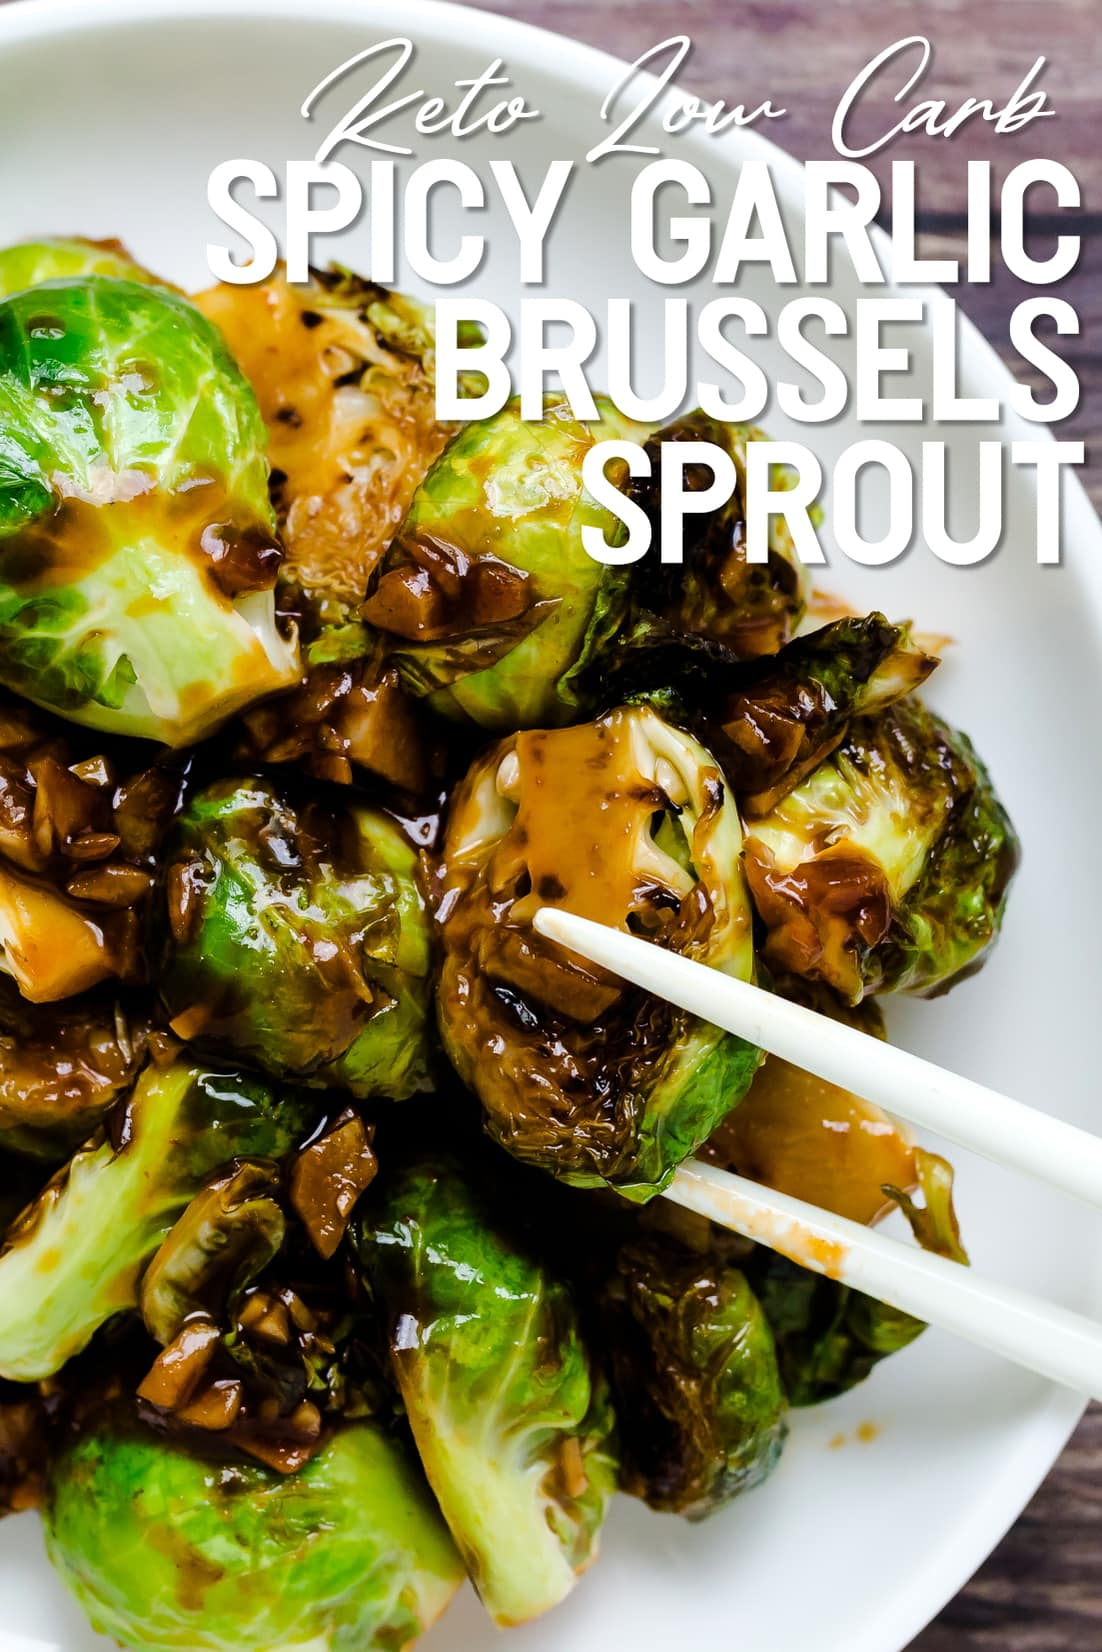 Spicy Garlic Sauteed Brussels Sprout with chopsticks